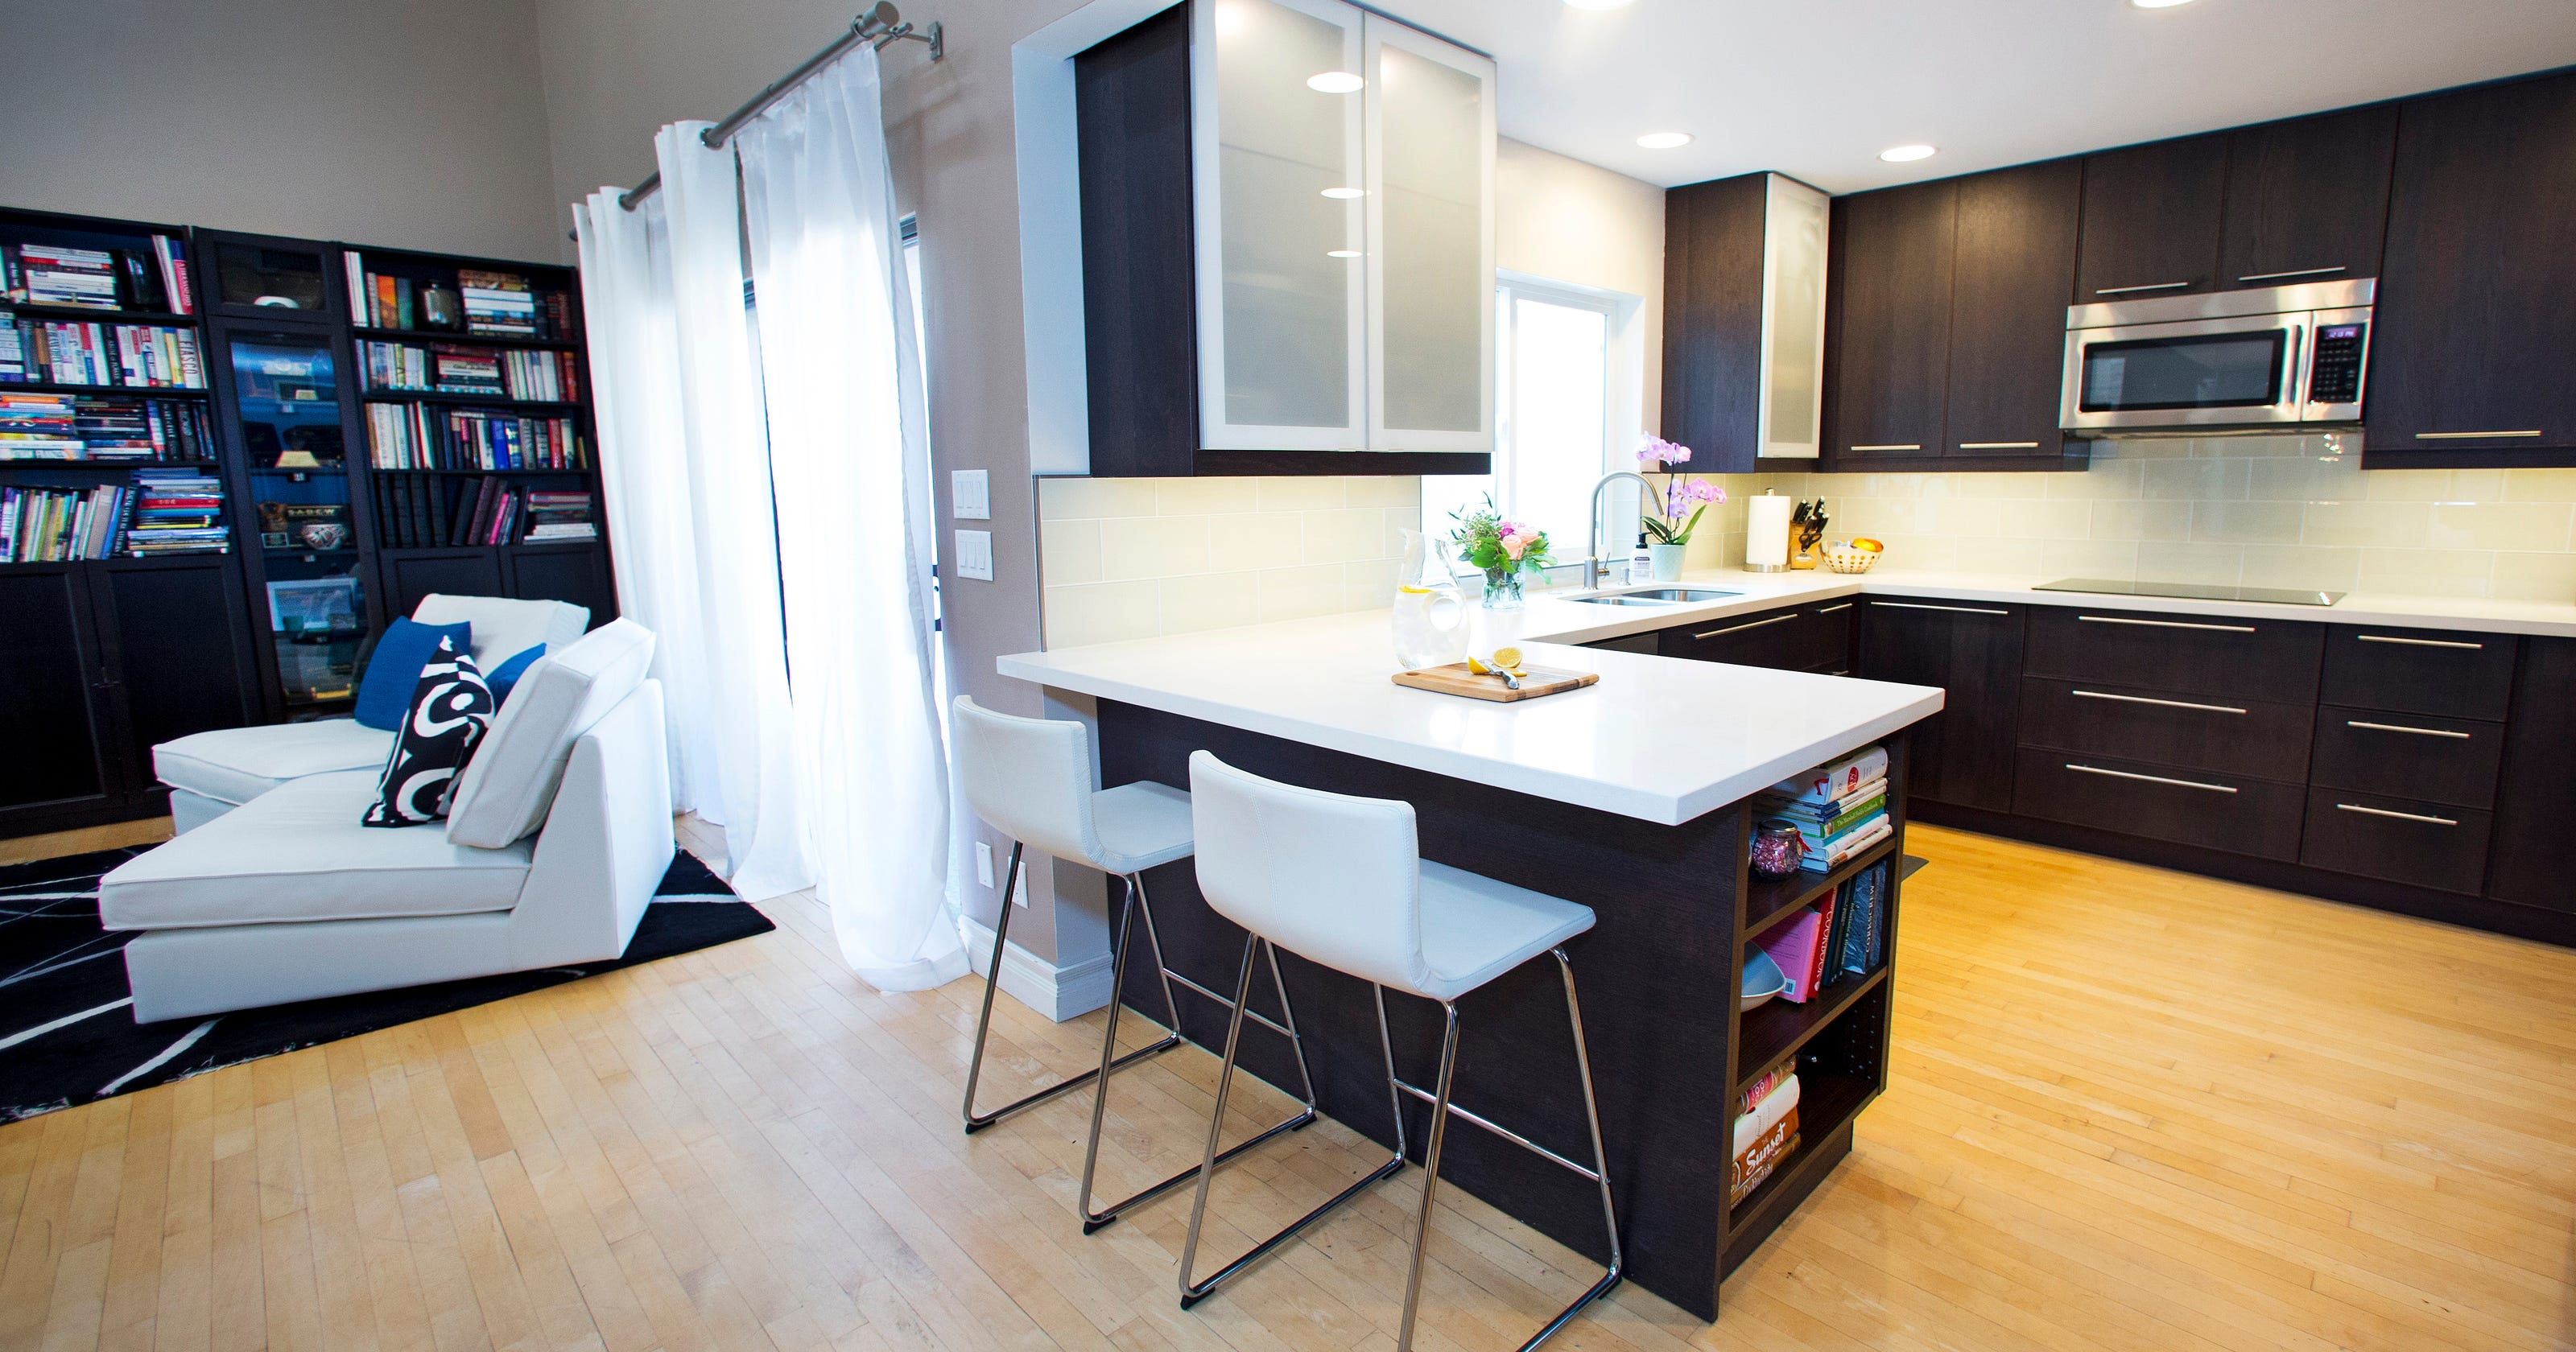 I spent $35,000 remodeling my kitchen, and here are 10 big lessons I ...